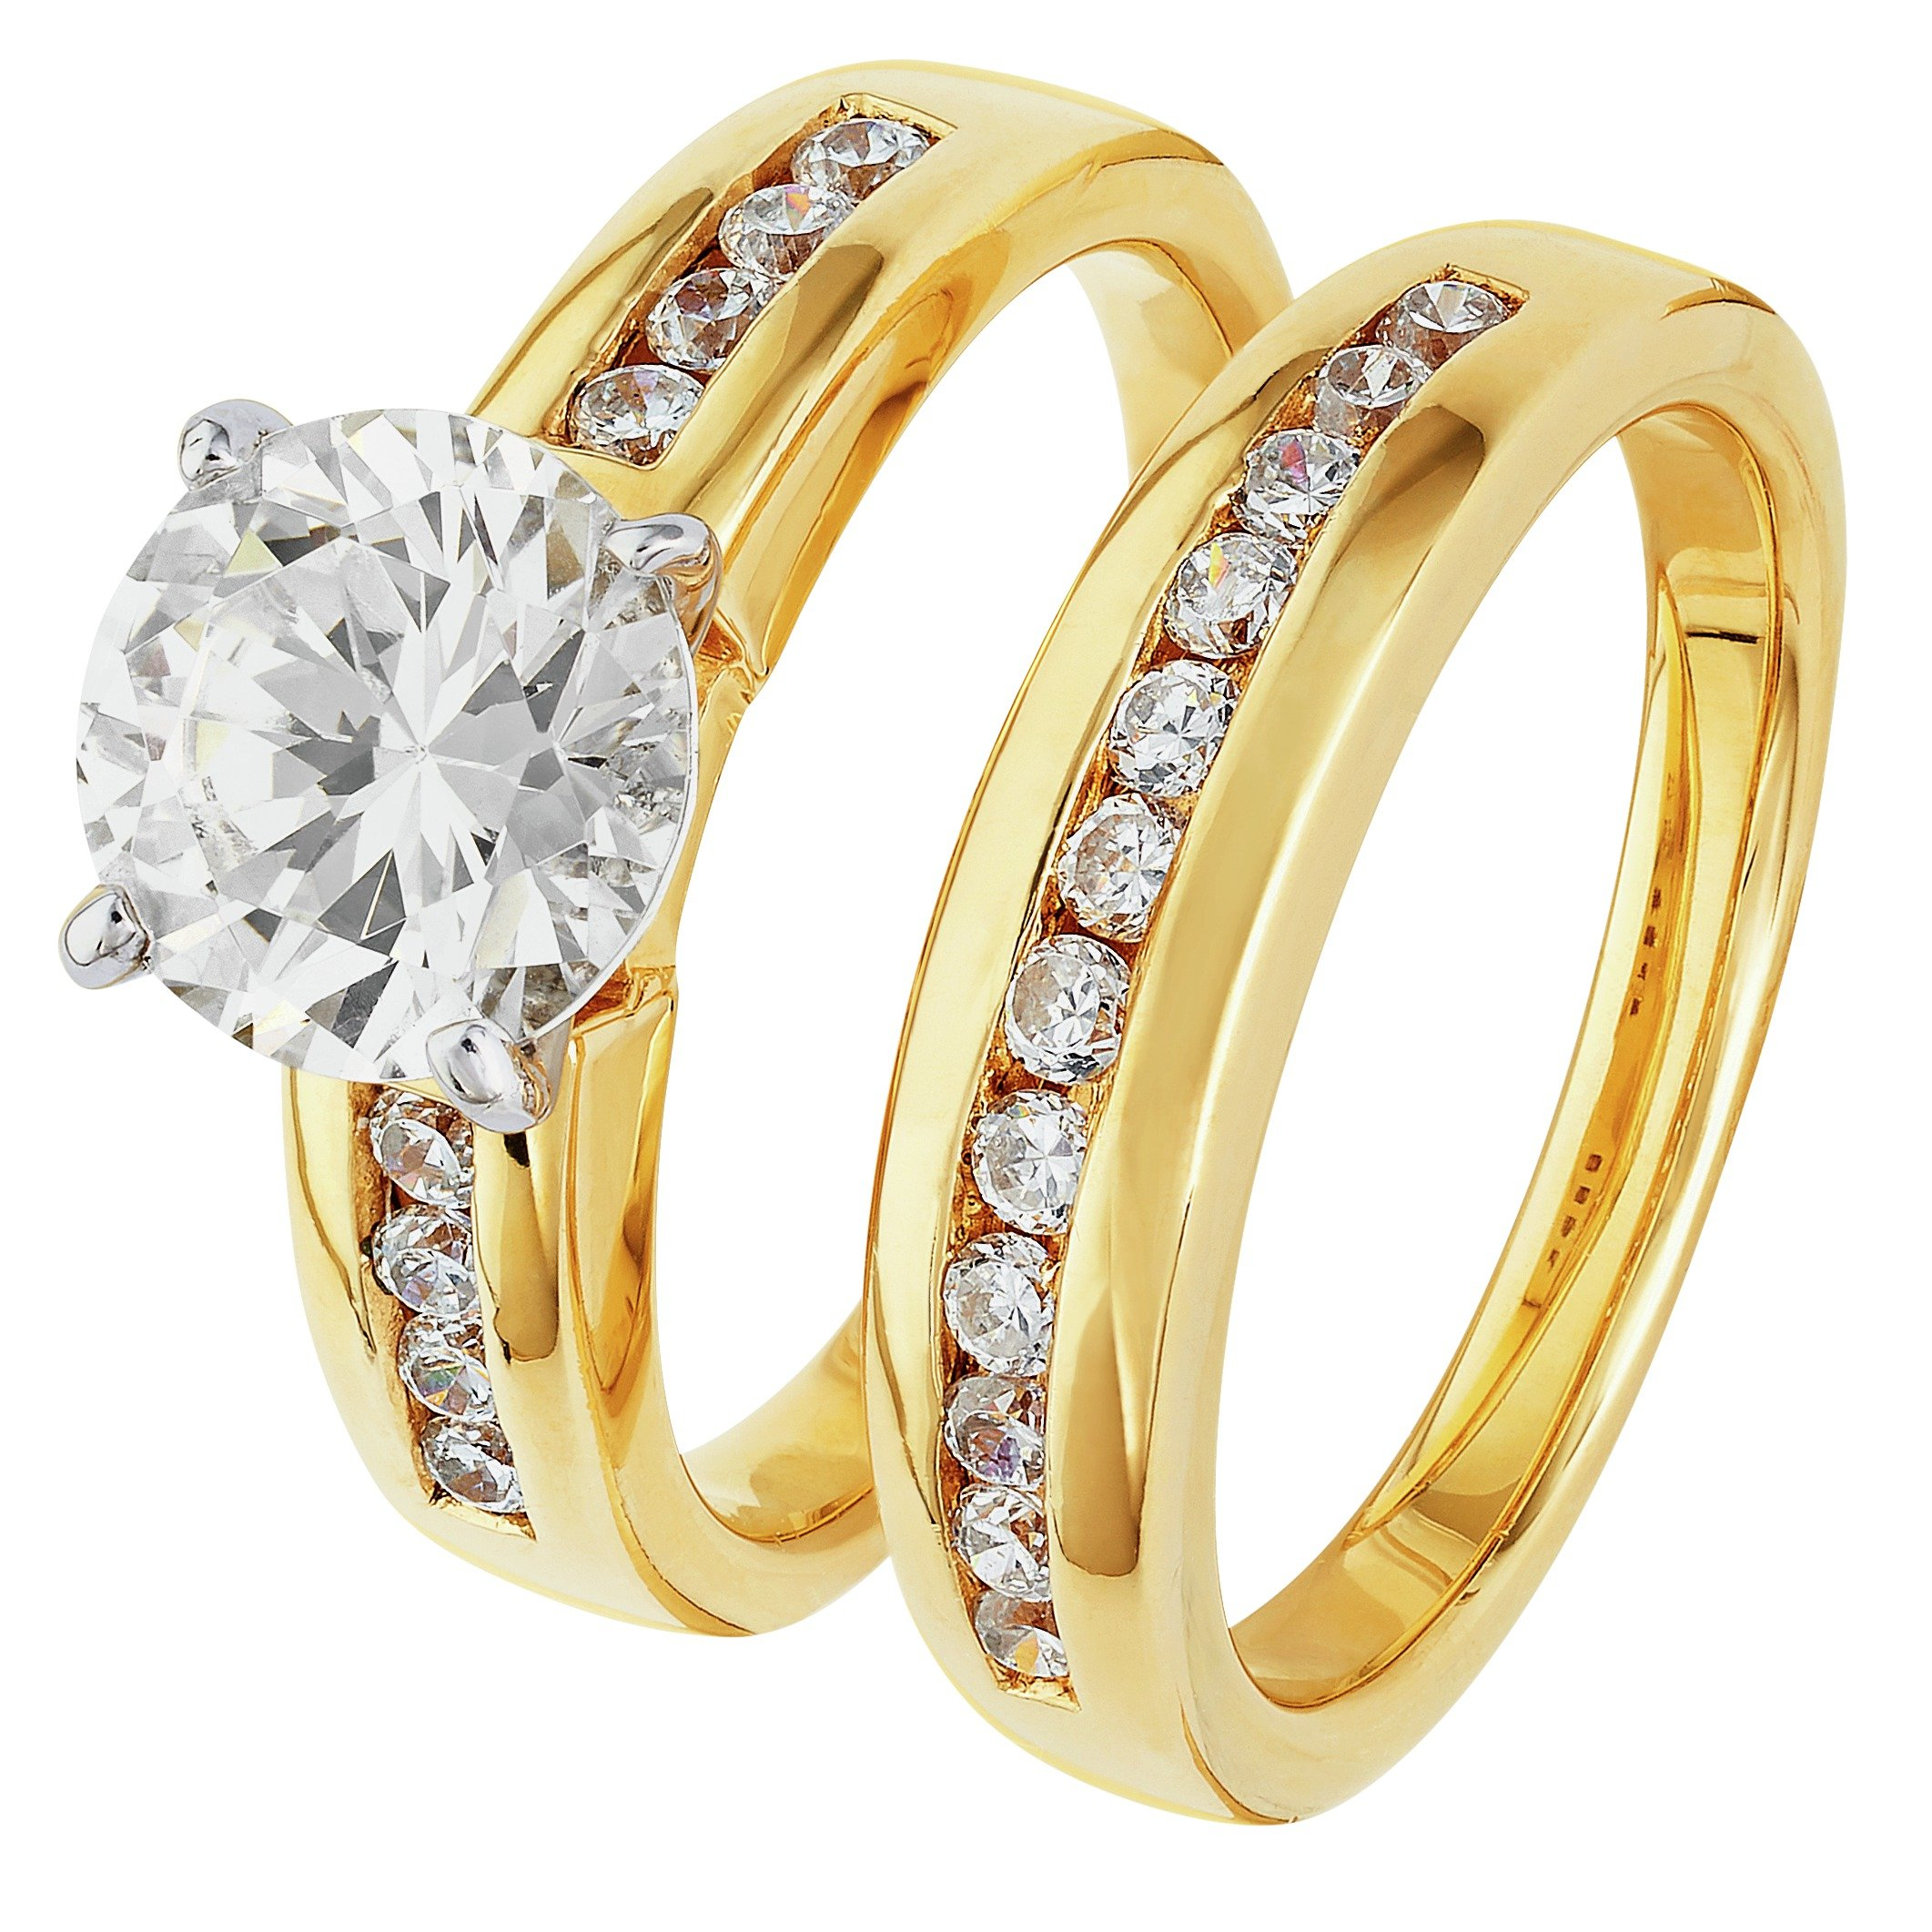 Buy Revere 18ct Gold Plated Silver 2 00ct Look Cz Ring Set